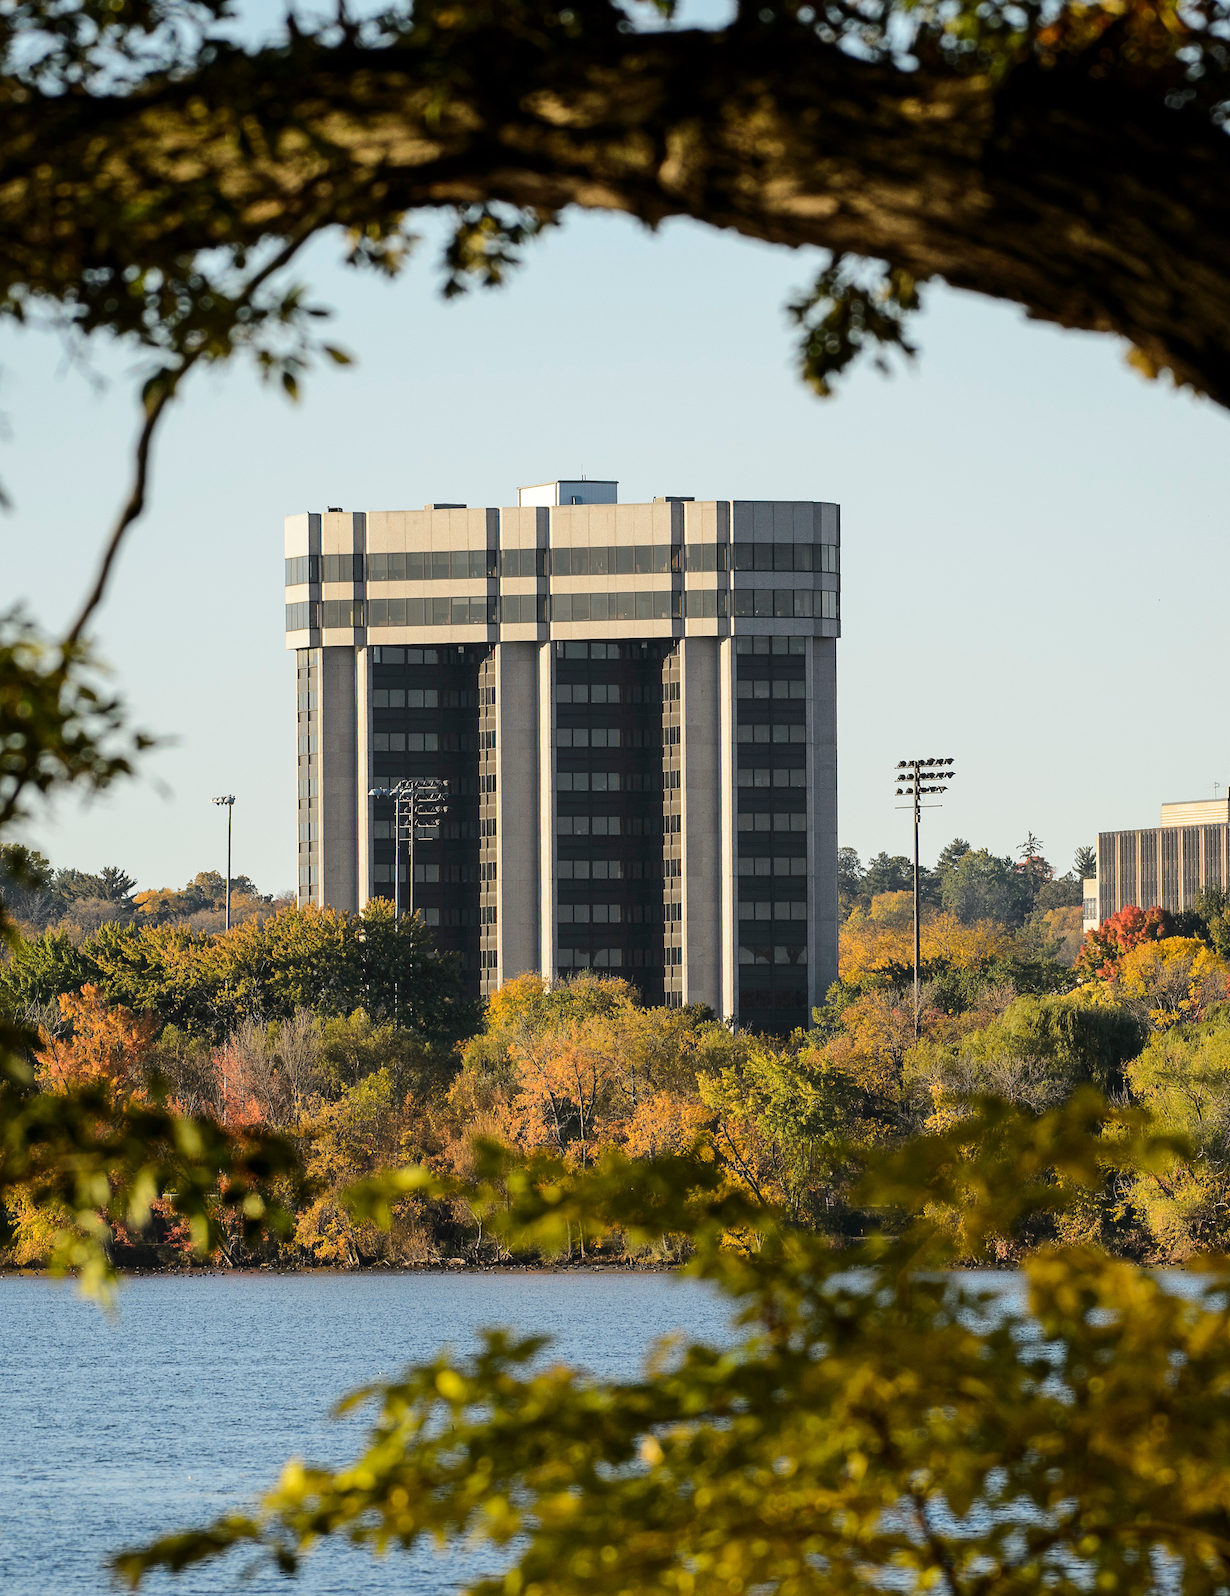 The Wisconsin Alumni Research Foundation Building (WARF) and Lake Mendota shoreline are seen from Picnic Point at the University of Wisconsin-Madison